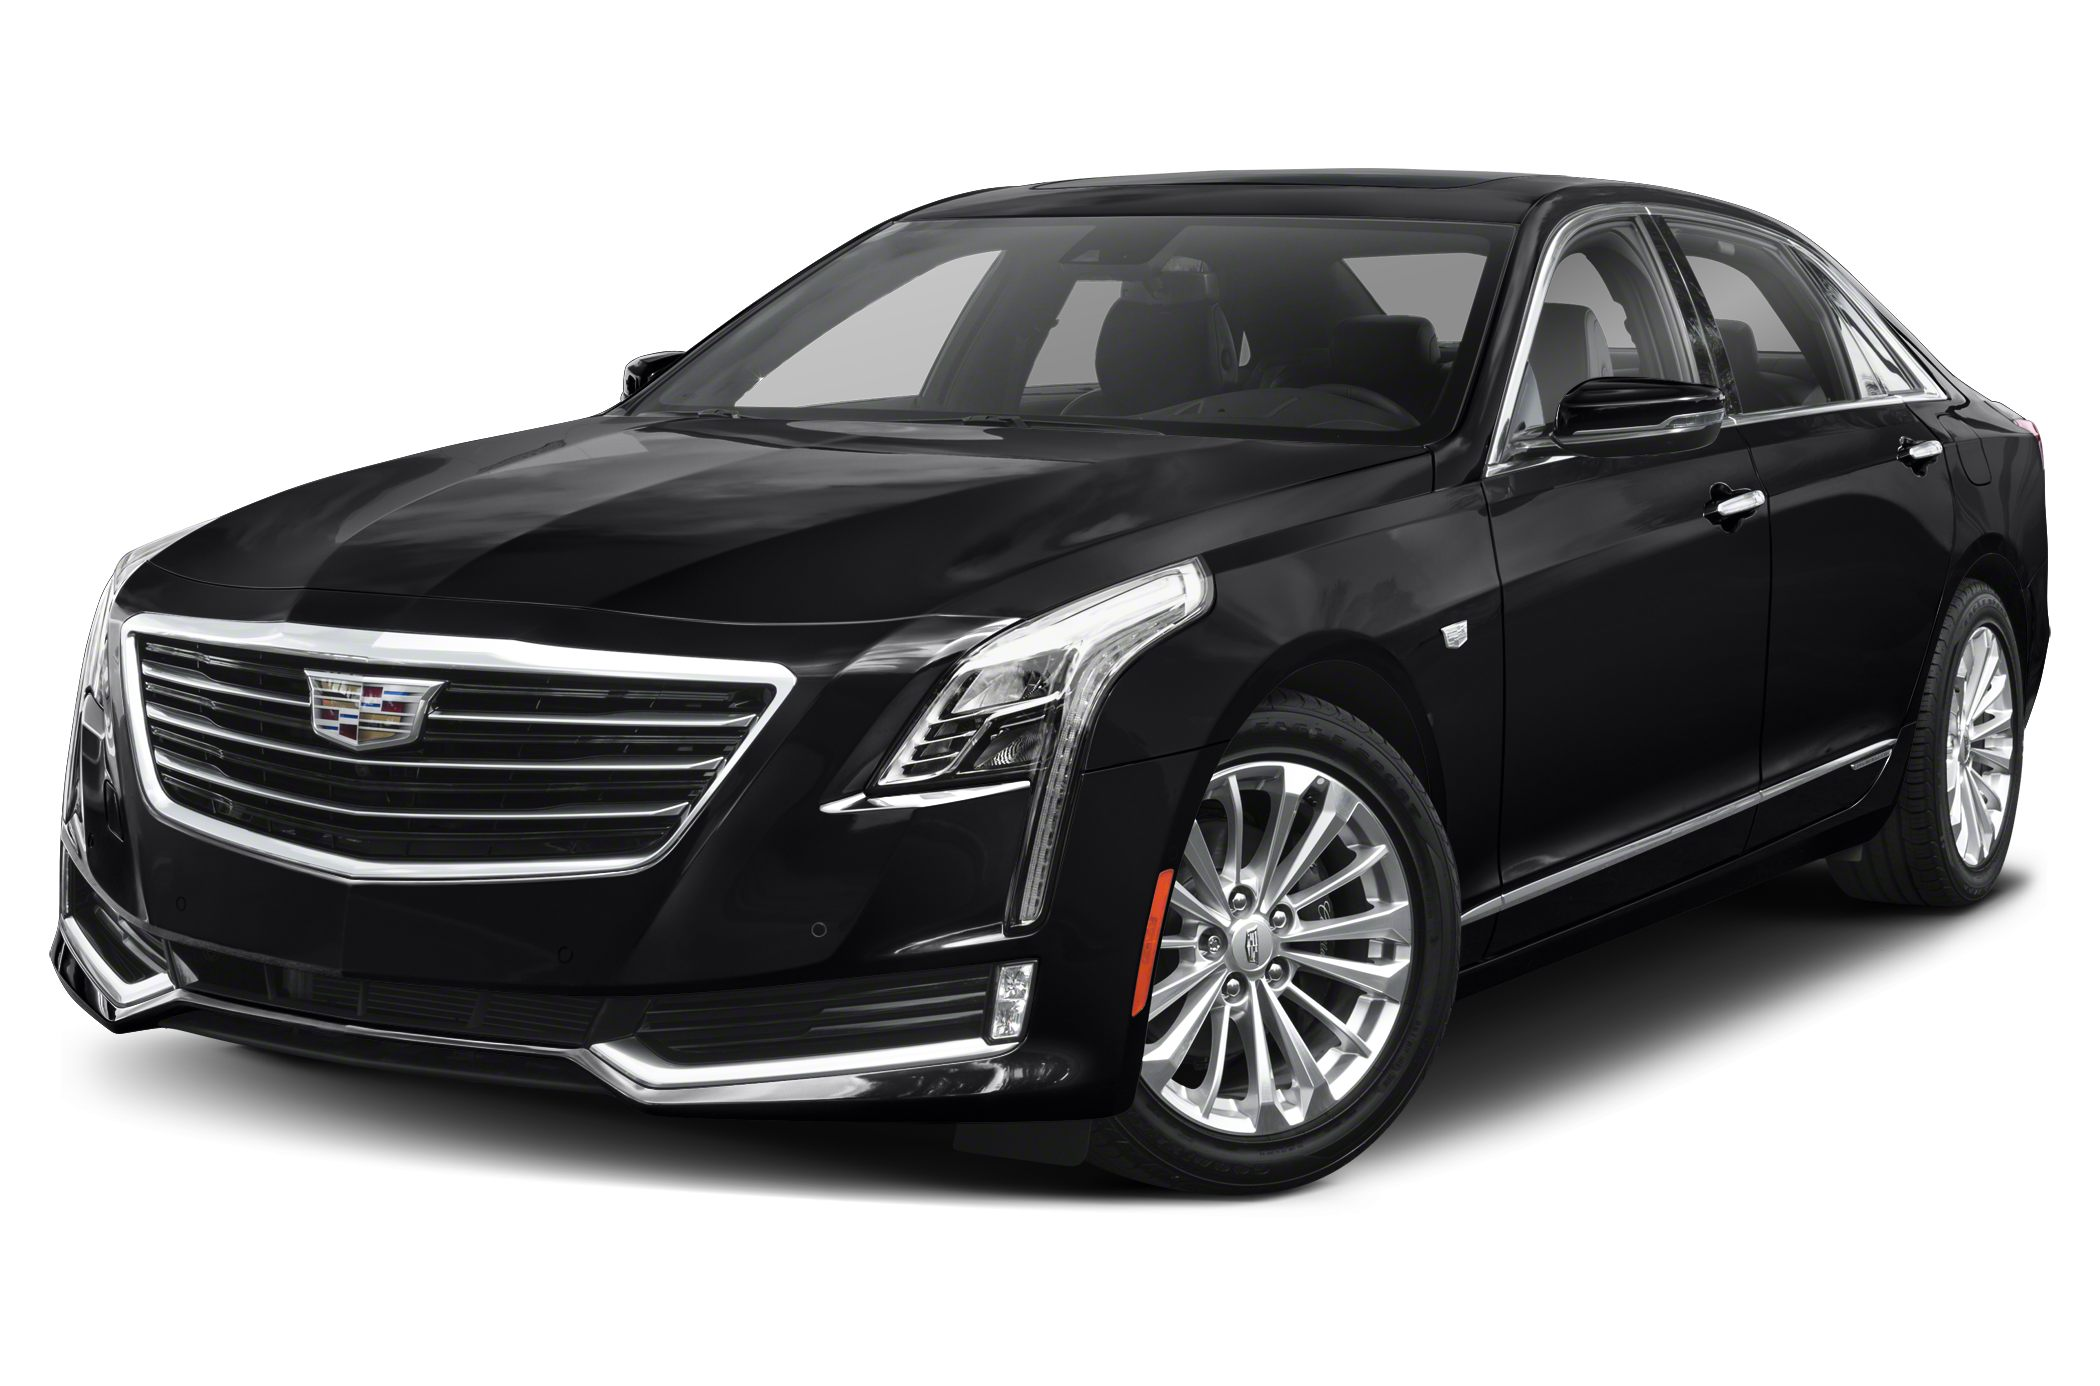 Cadillac Ct6 Plug In News Photos And Buying Information